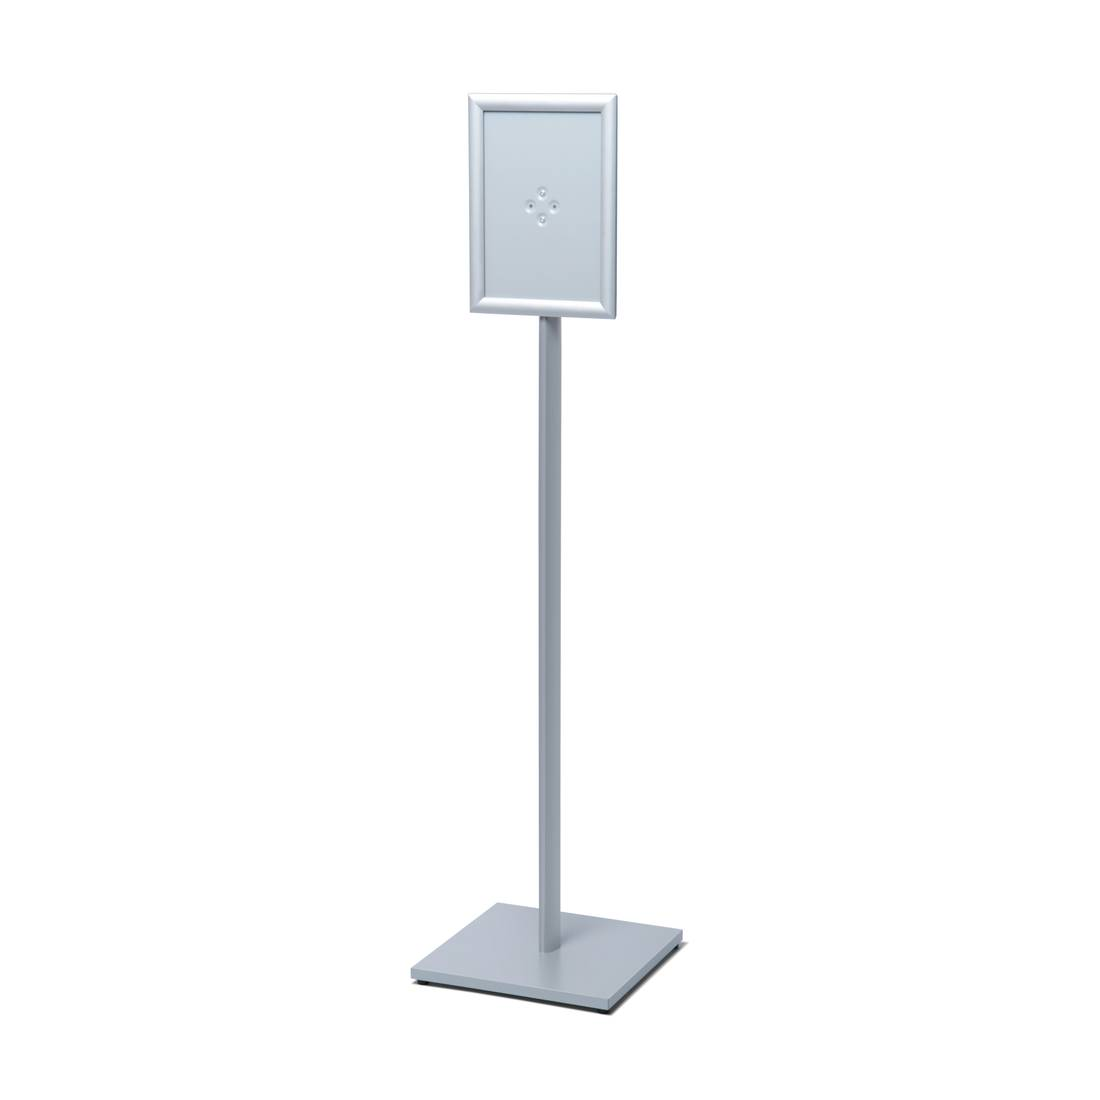 Poster stand (size A4)